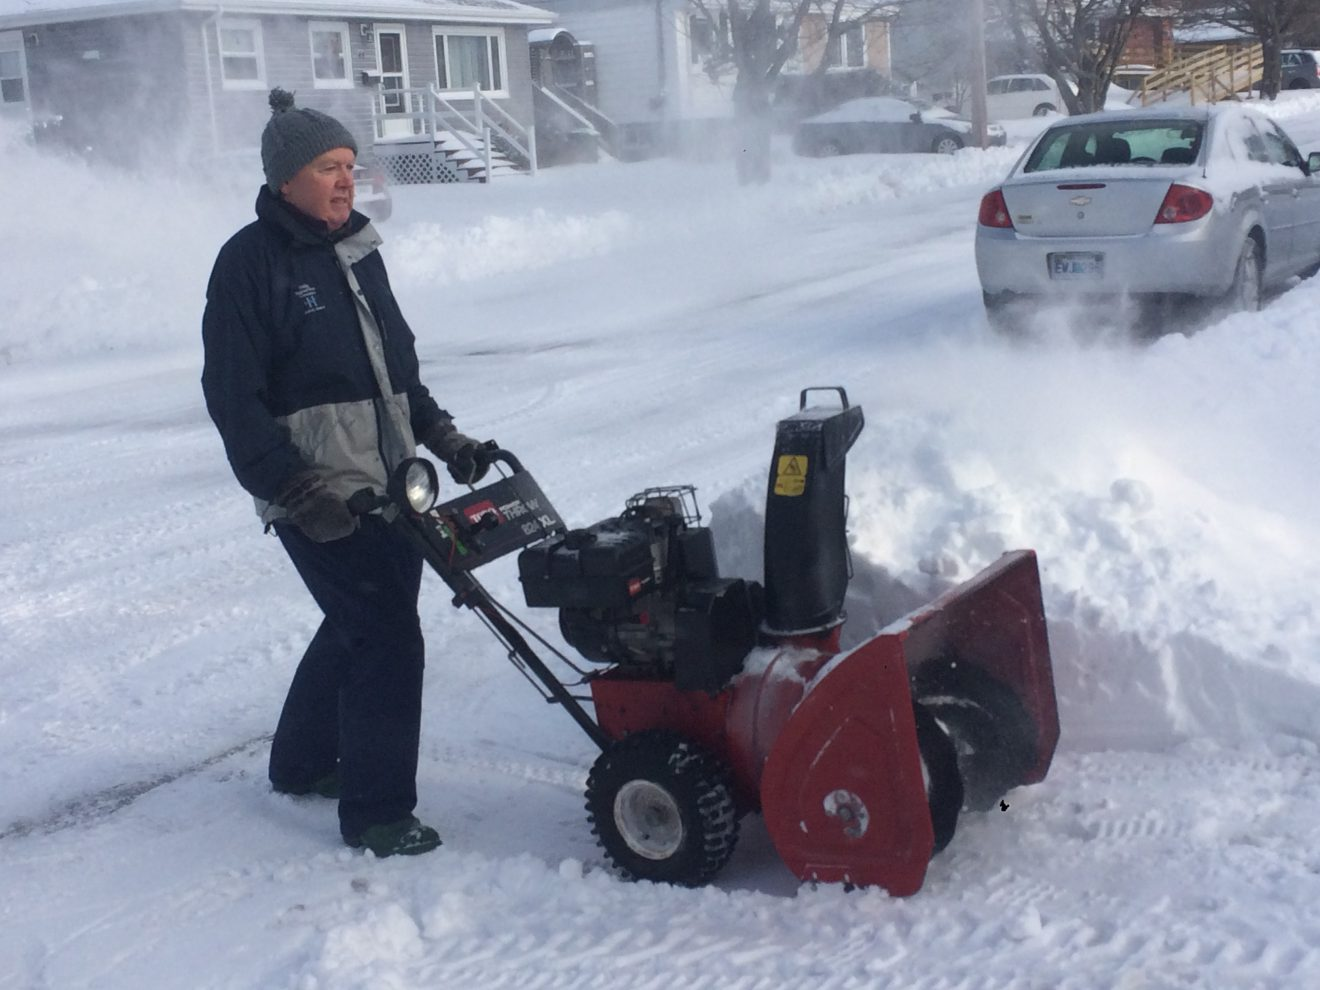 Wendell Coveyduc uses a snowblower to clear his driveway on Friday after the second snowstorm to Halifax in less than a week.